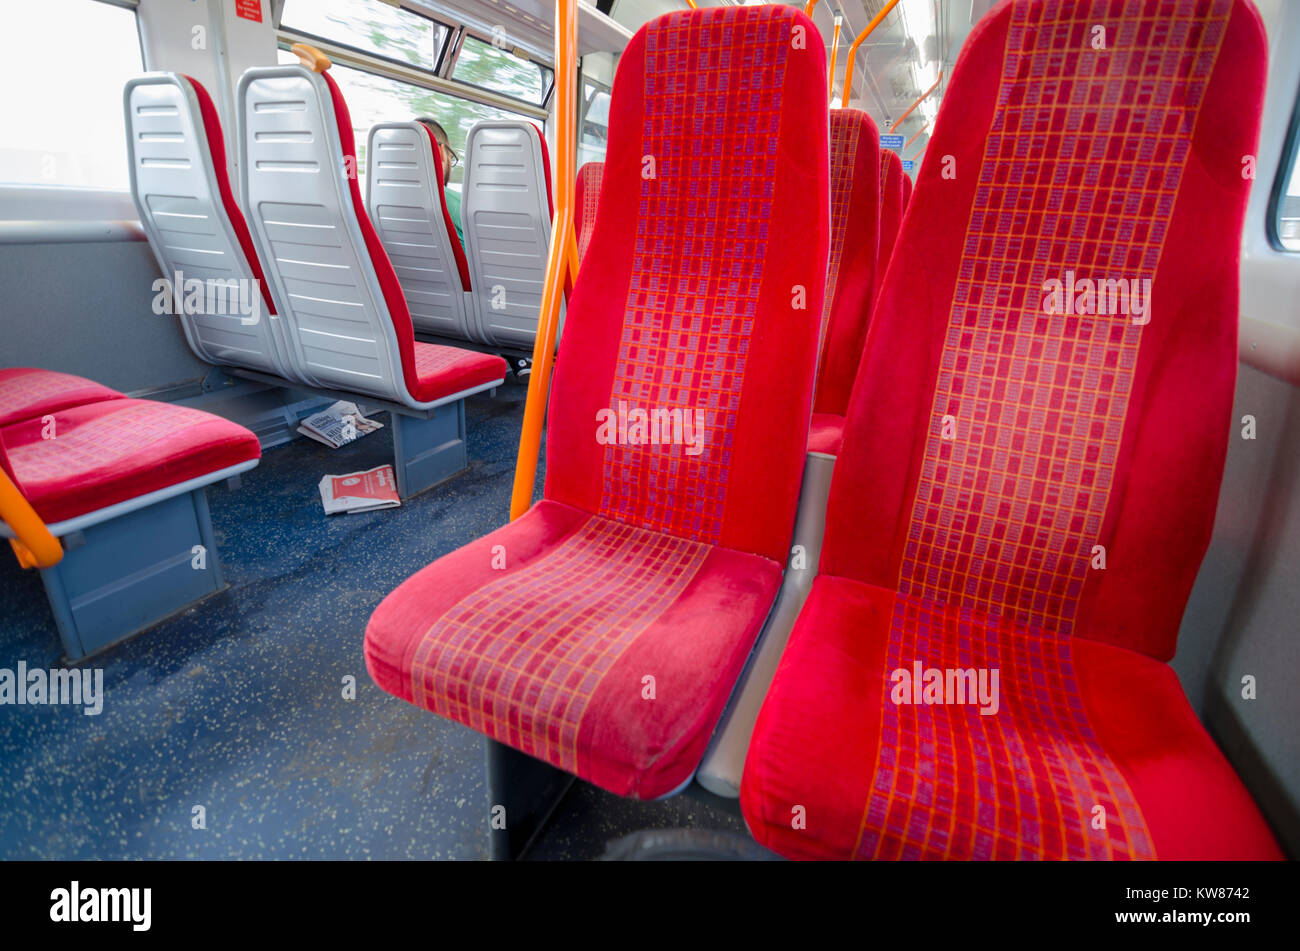 Empty seats South West Trains interior, south London, UK - Stock Image